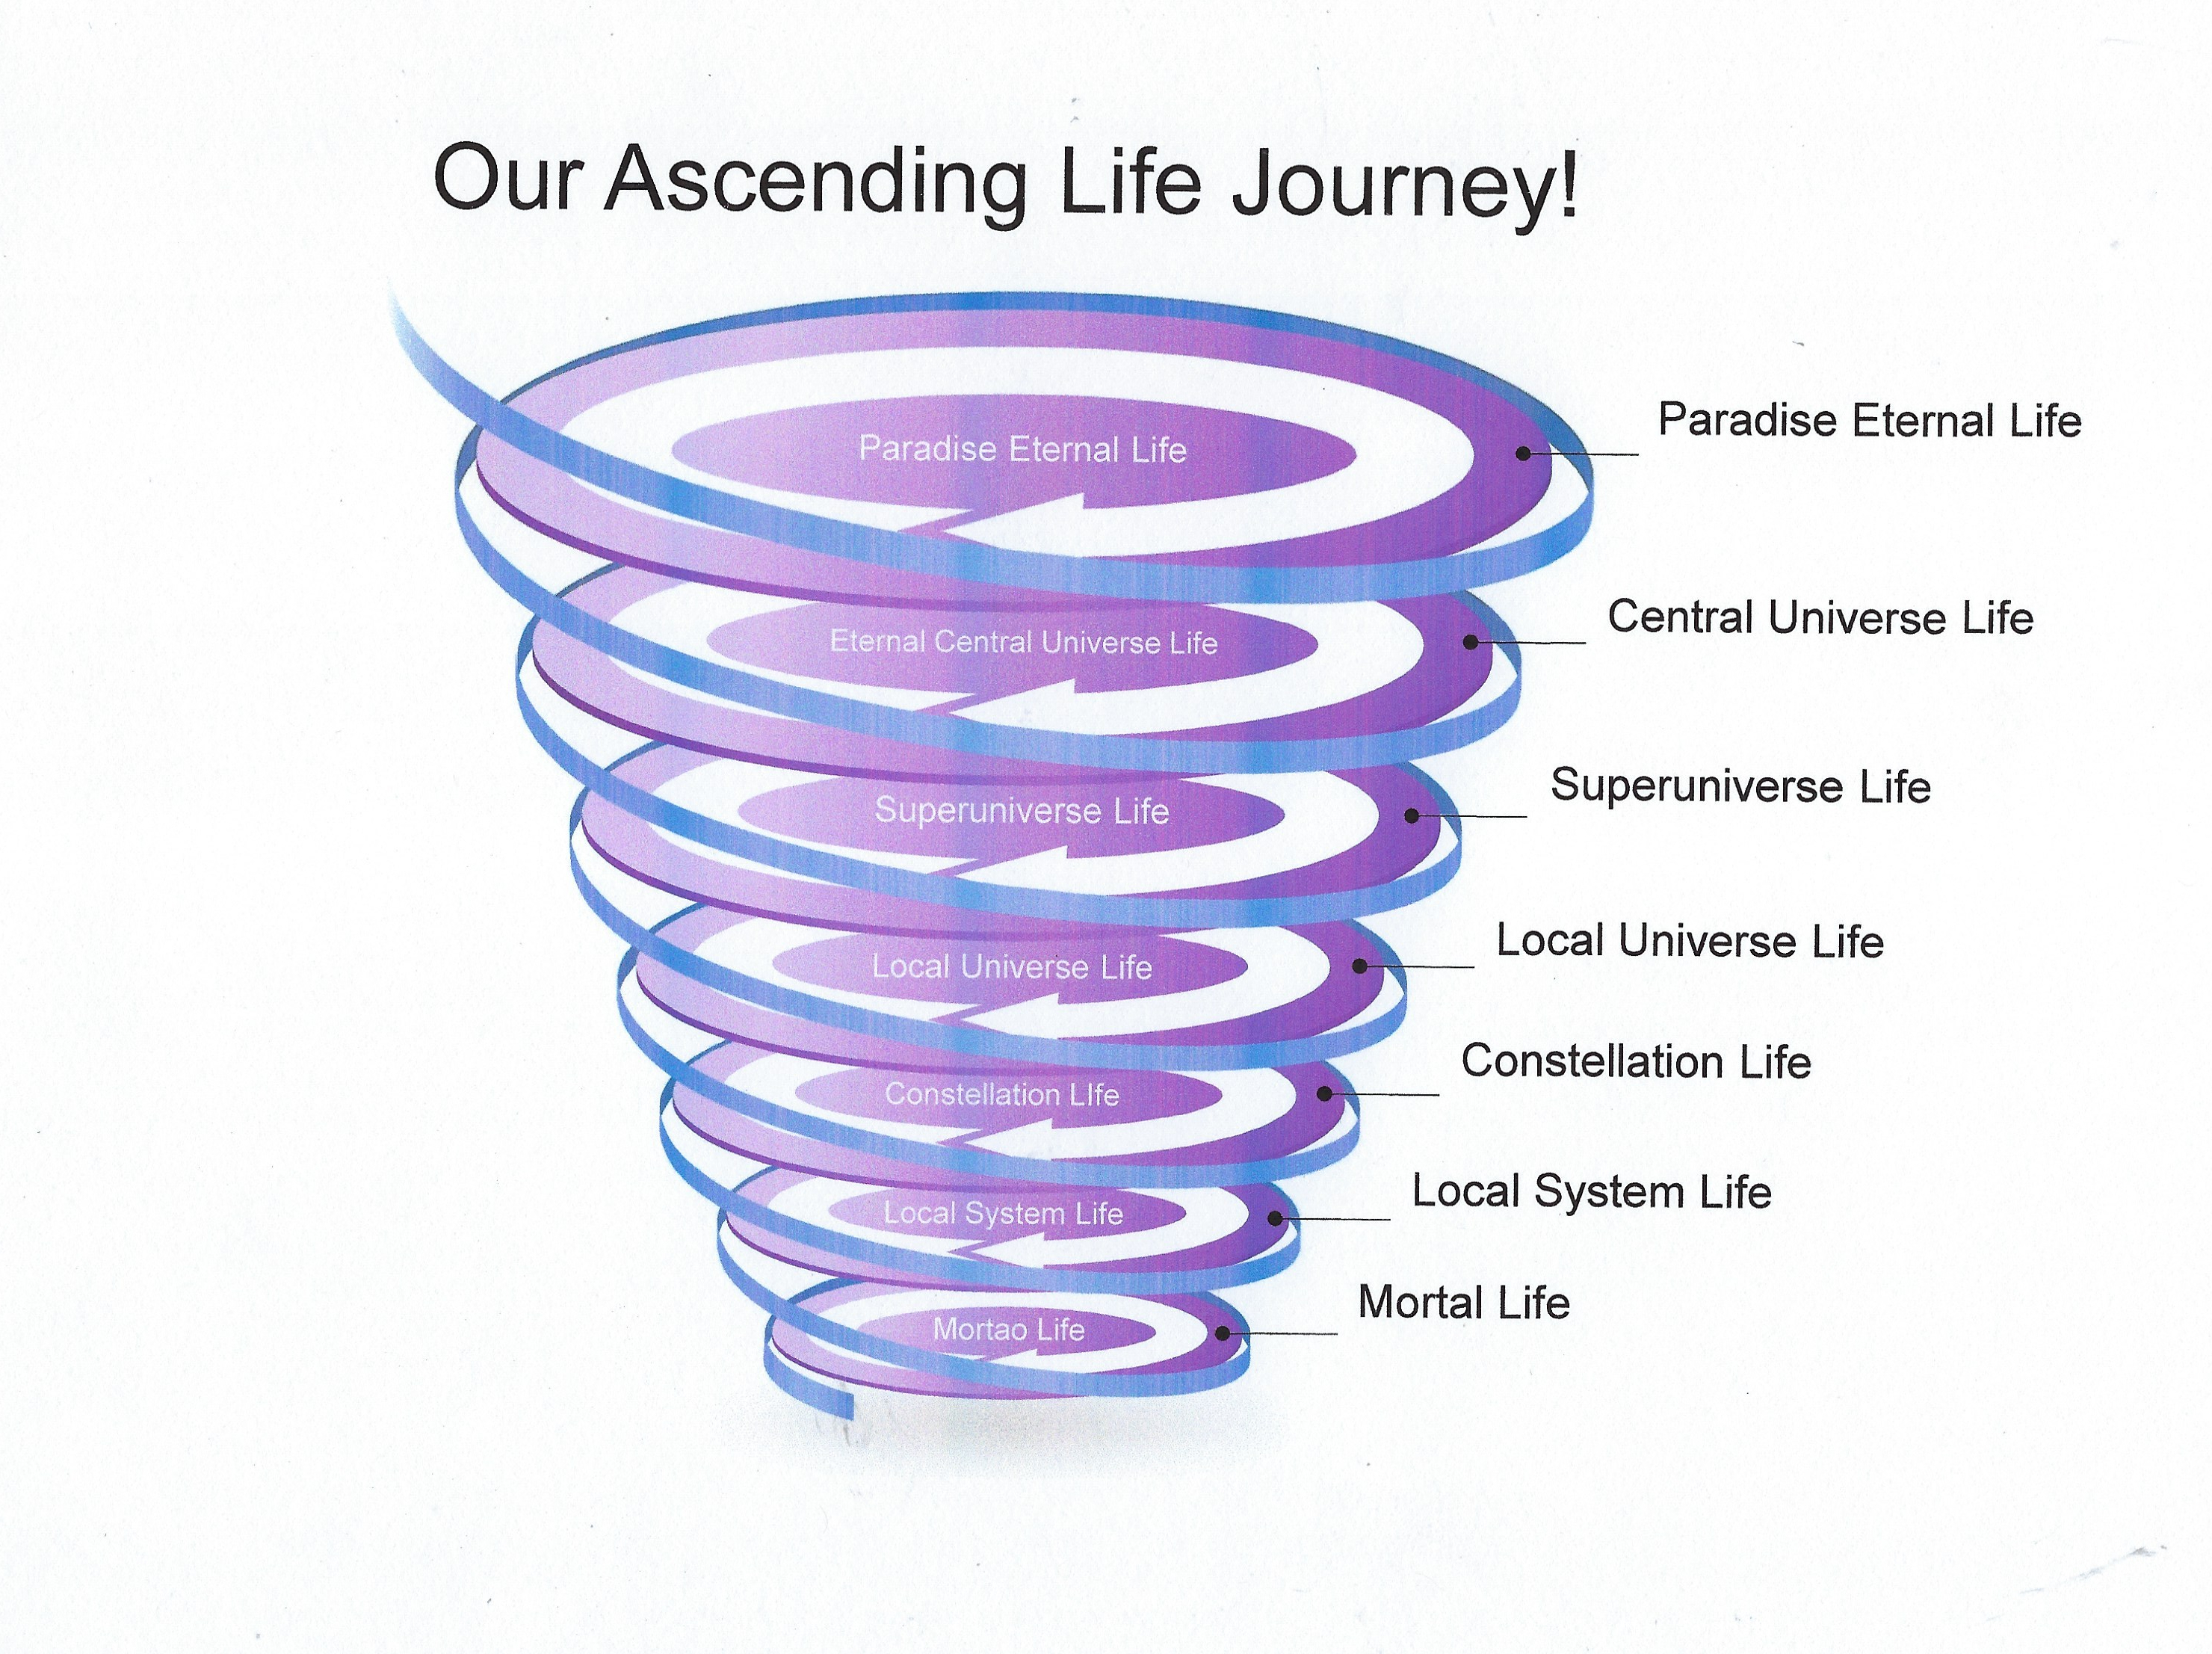 Our Ascending Journey to Eternal Life!